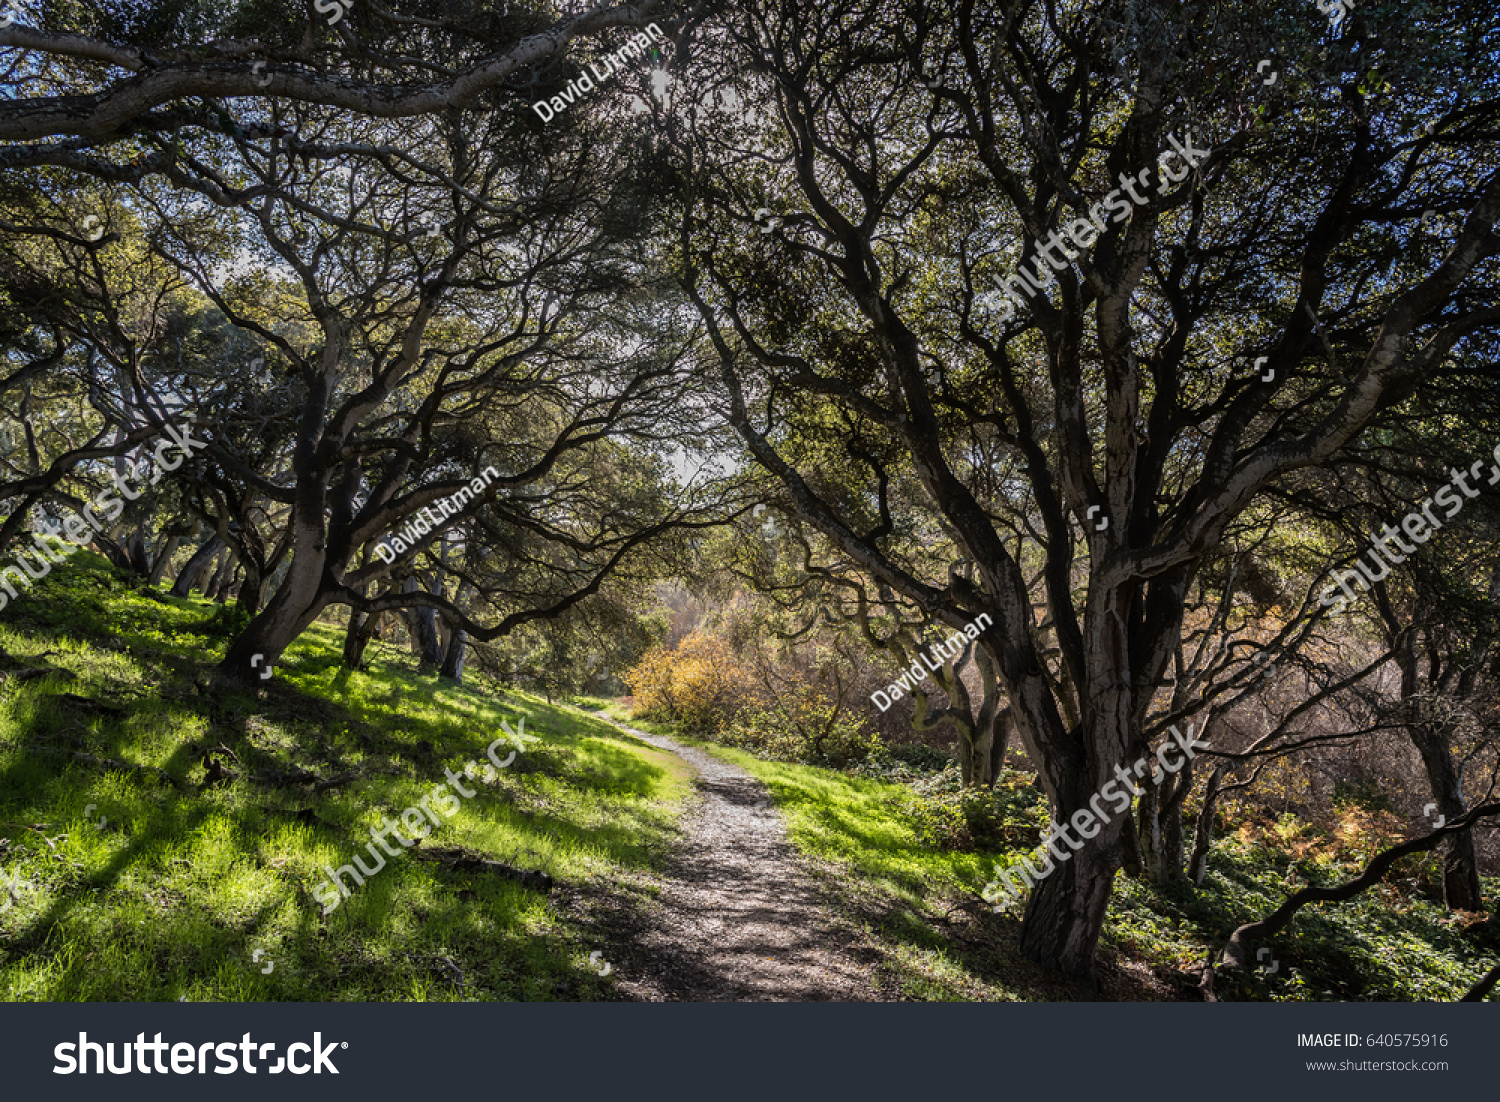 Coastal Live Oak trees (Quercus agrifolia) line a hiking trail in the hills of Monterey, California, as light shines through the branches leaving a contrasting pattern on the ground.